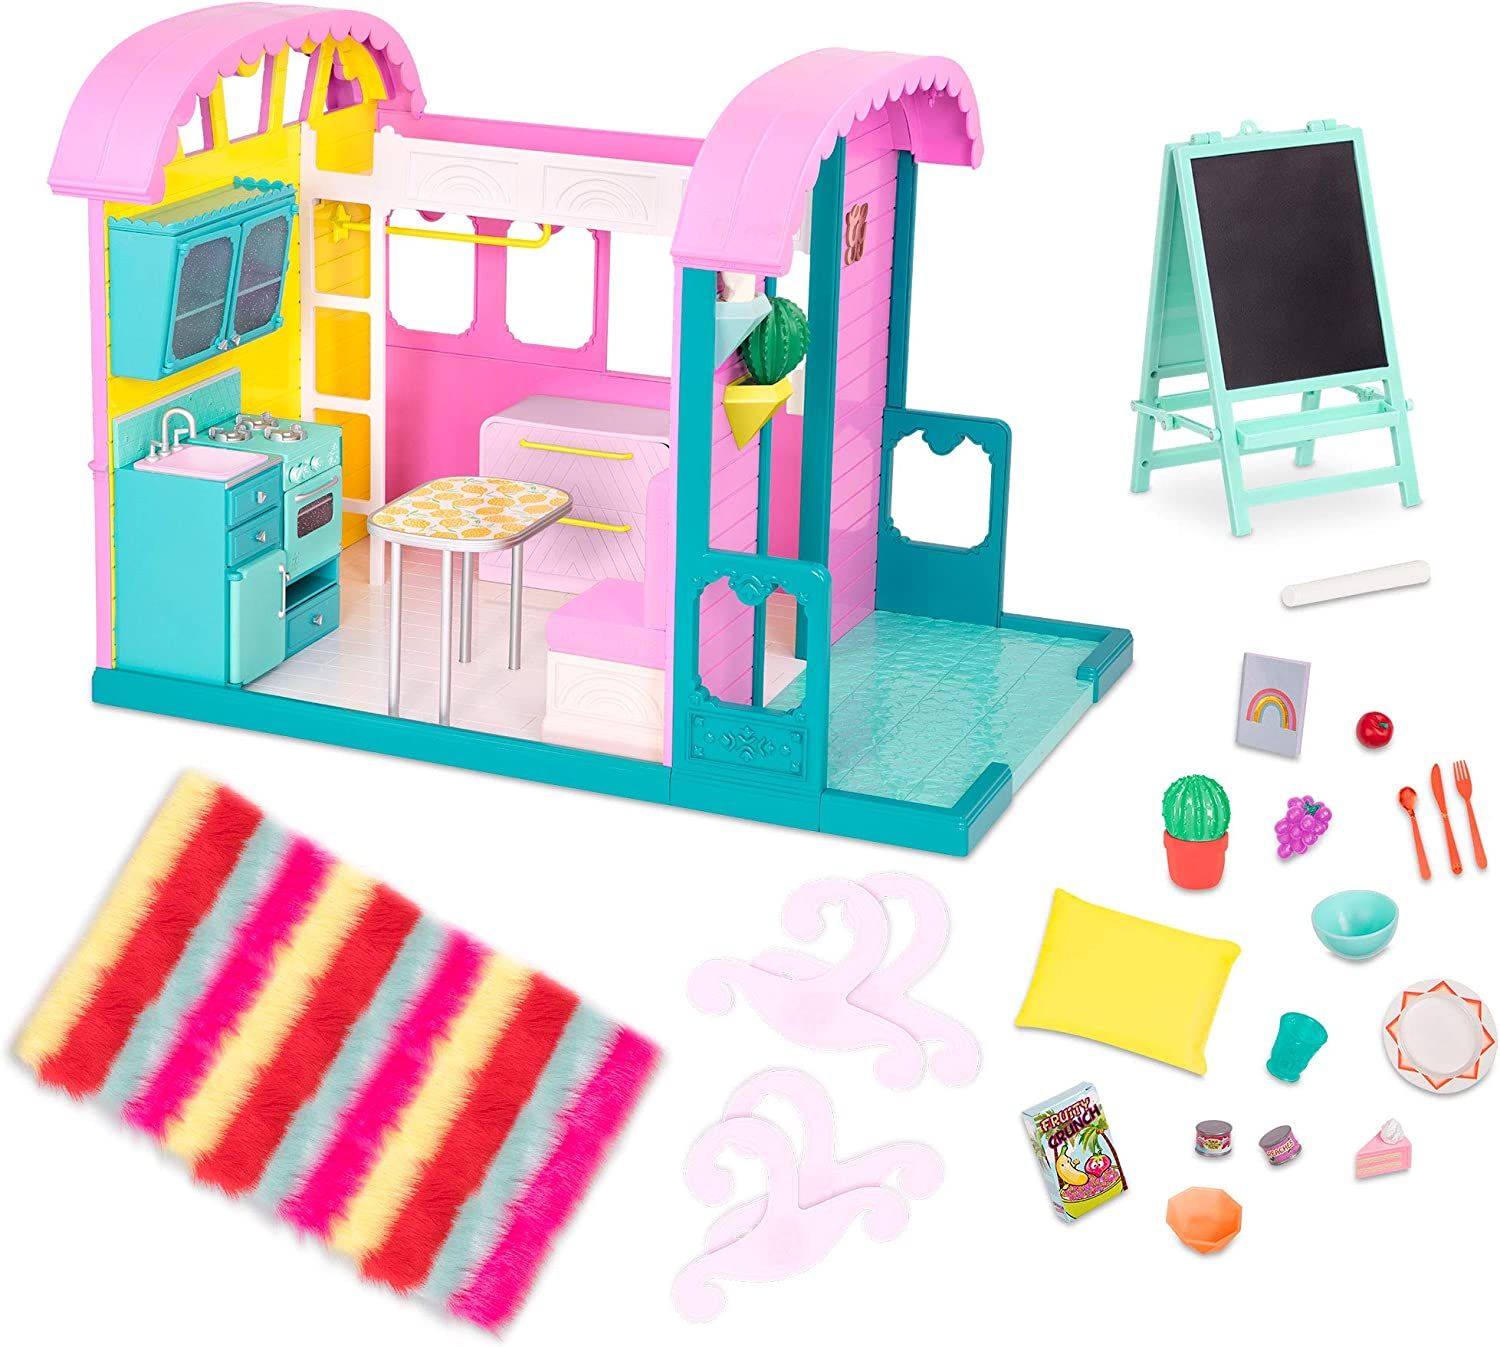 Glitter Girls Dolls by Battat – GG Doll House Playset with Furniture and Home Accessories – Kitchen, Oven, and Patio – 14-inch Doll Clothes and Accessories for Kids Ages 3 and Up